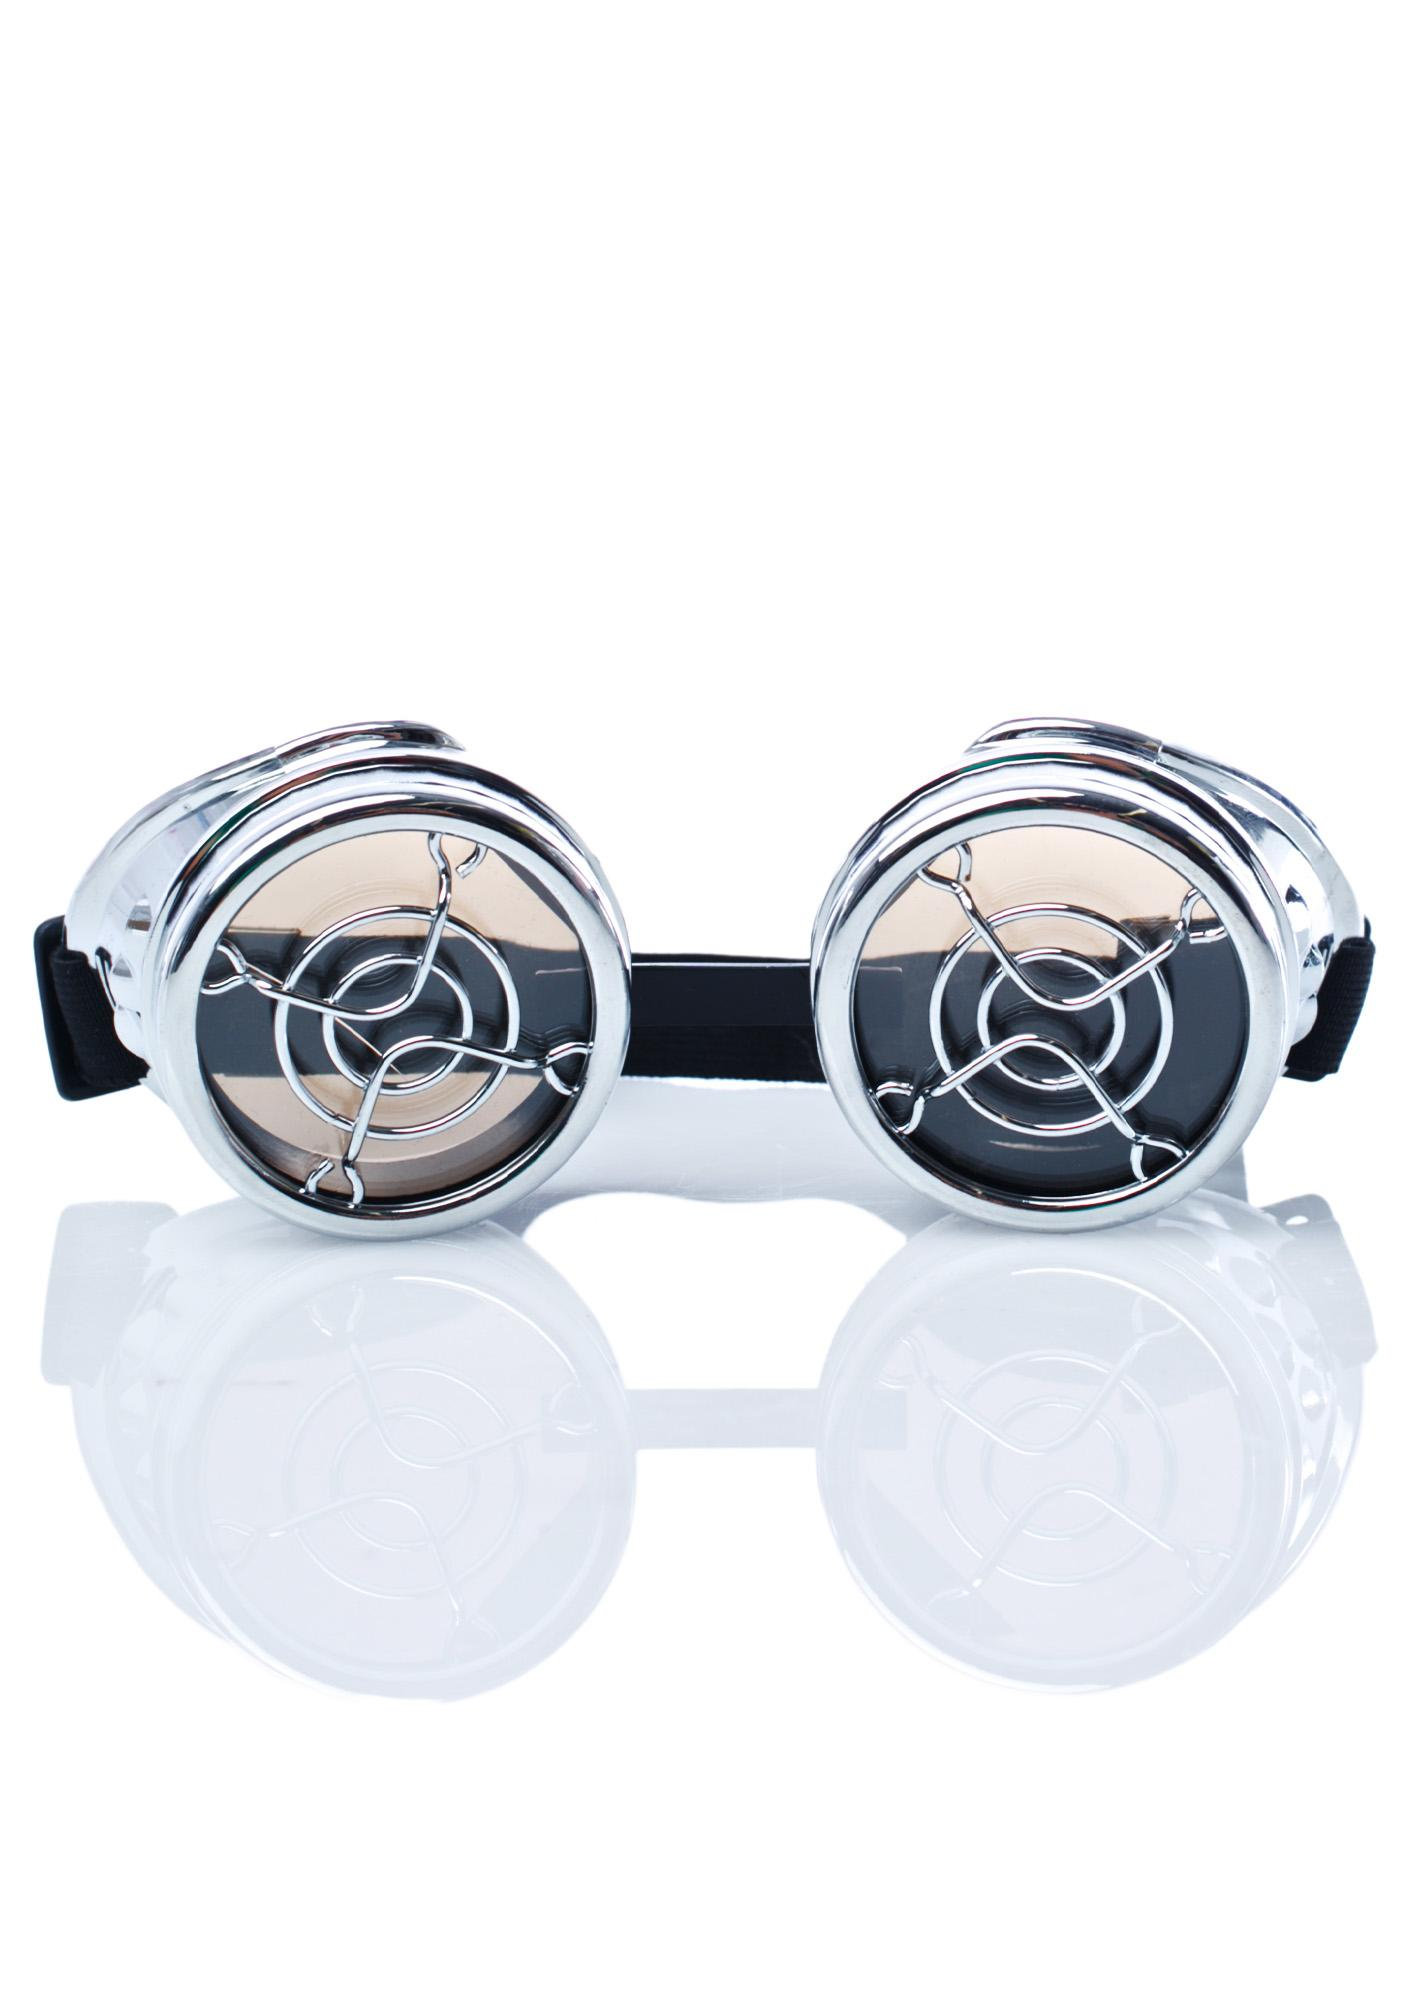 Machined Goggles